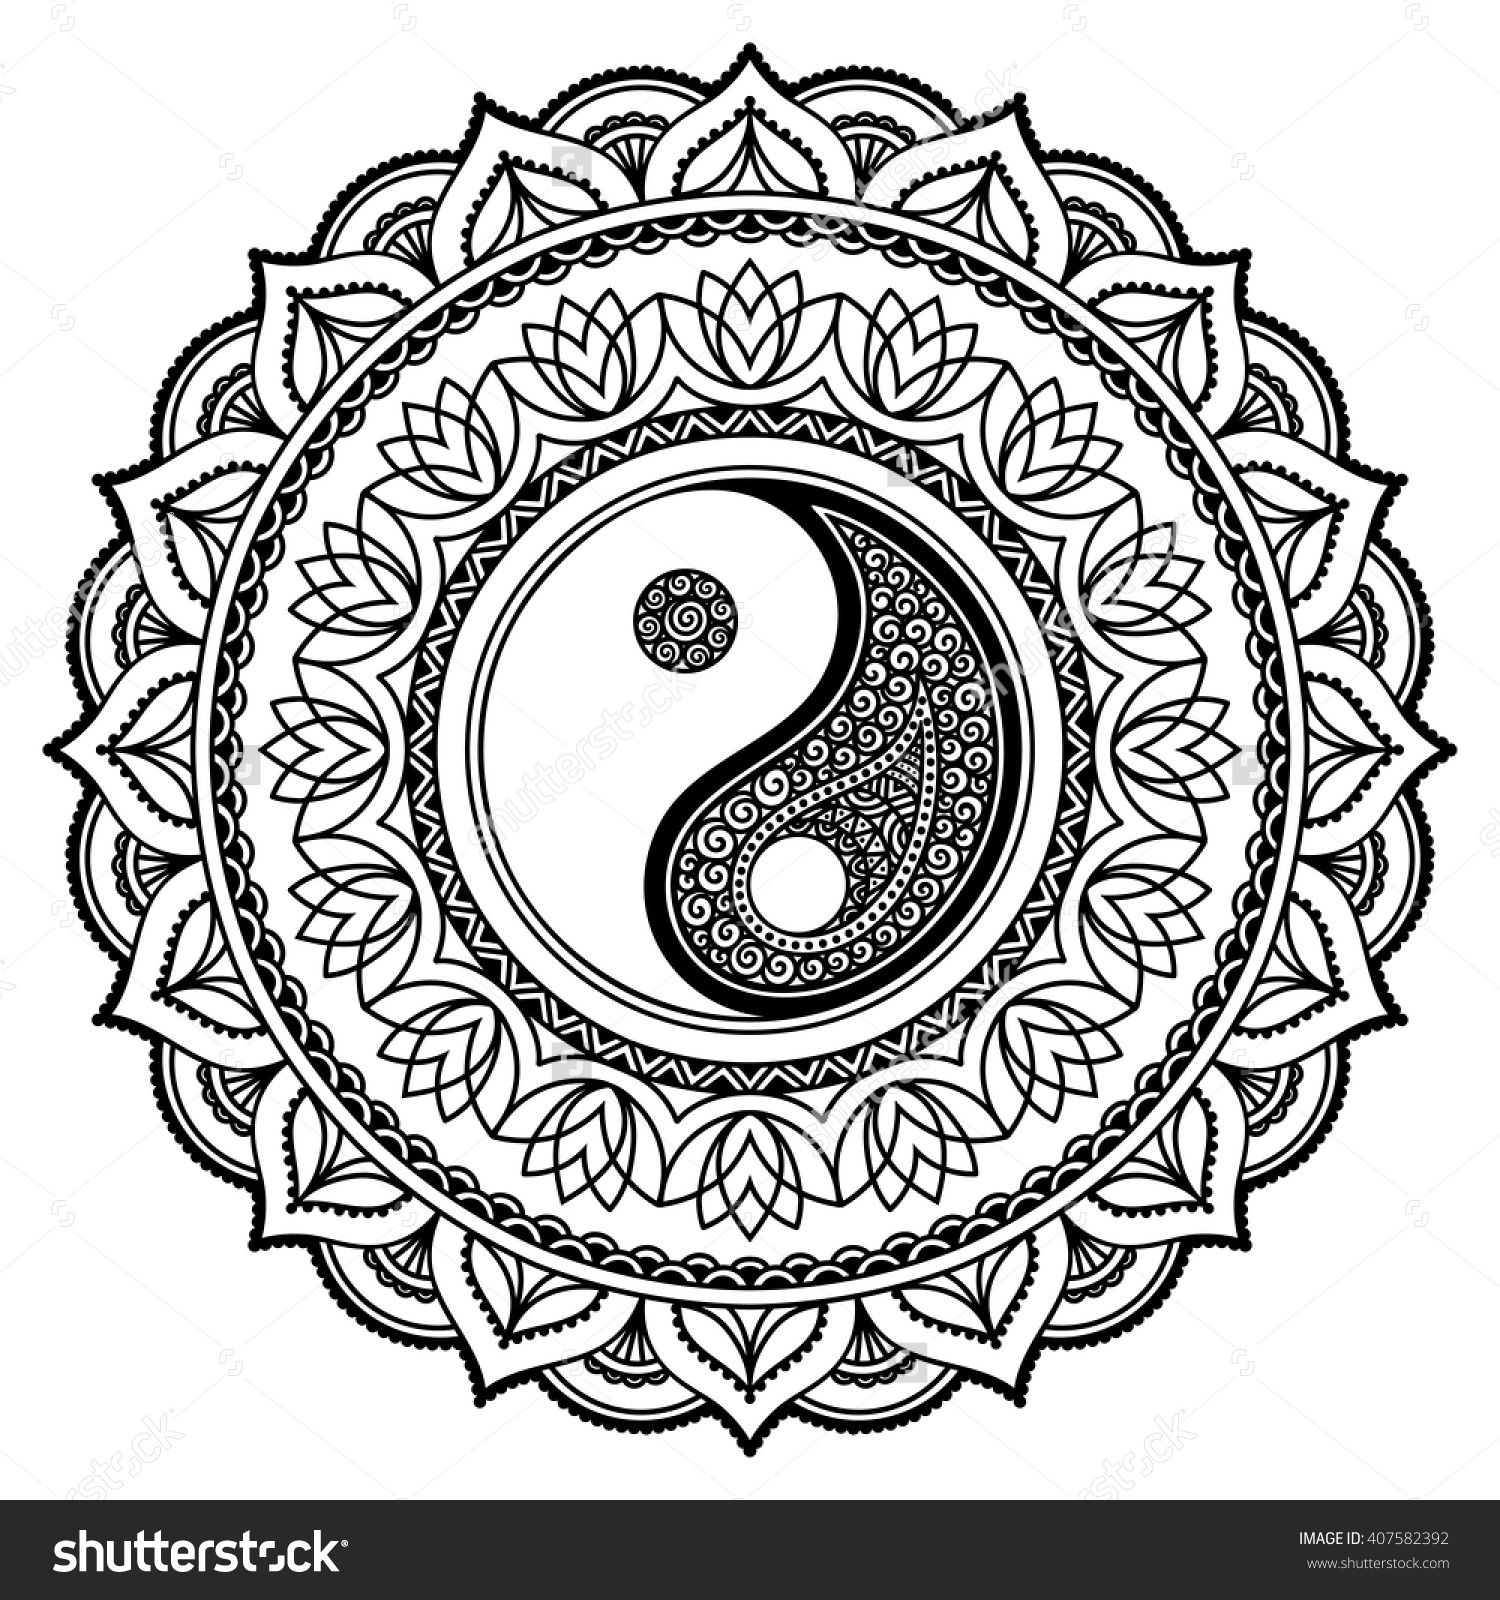 Coloring pages yin yang - Coloring Books